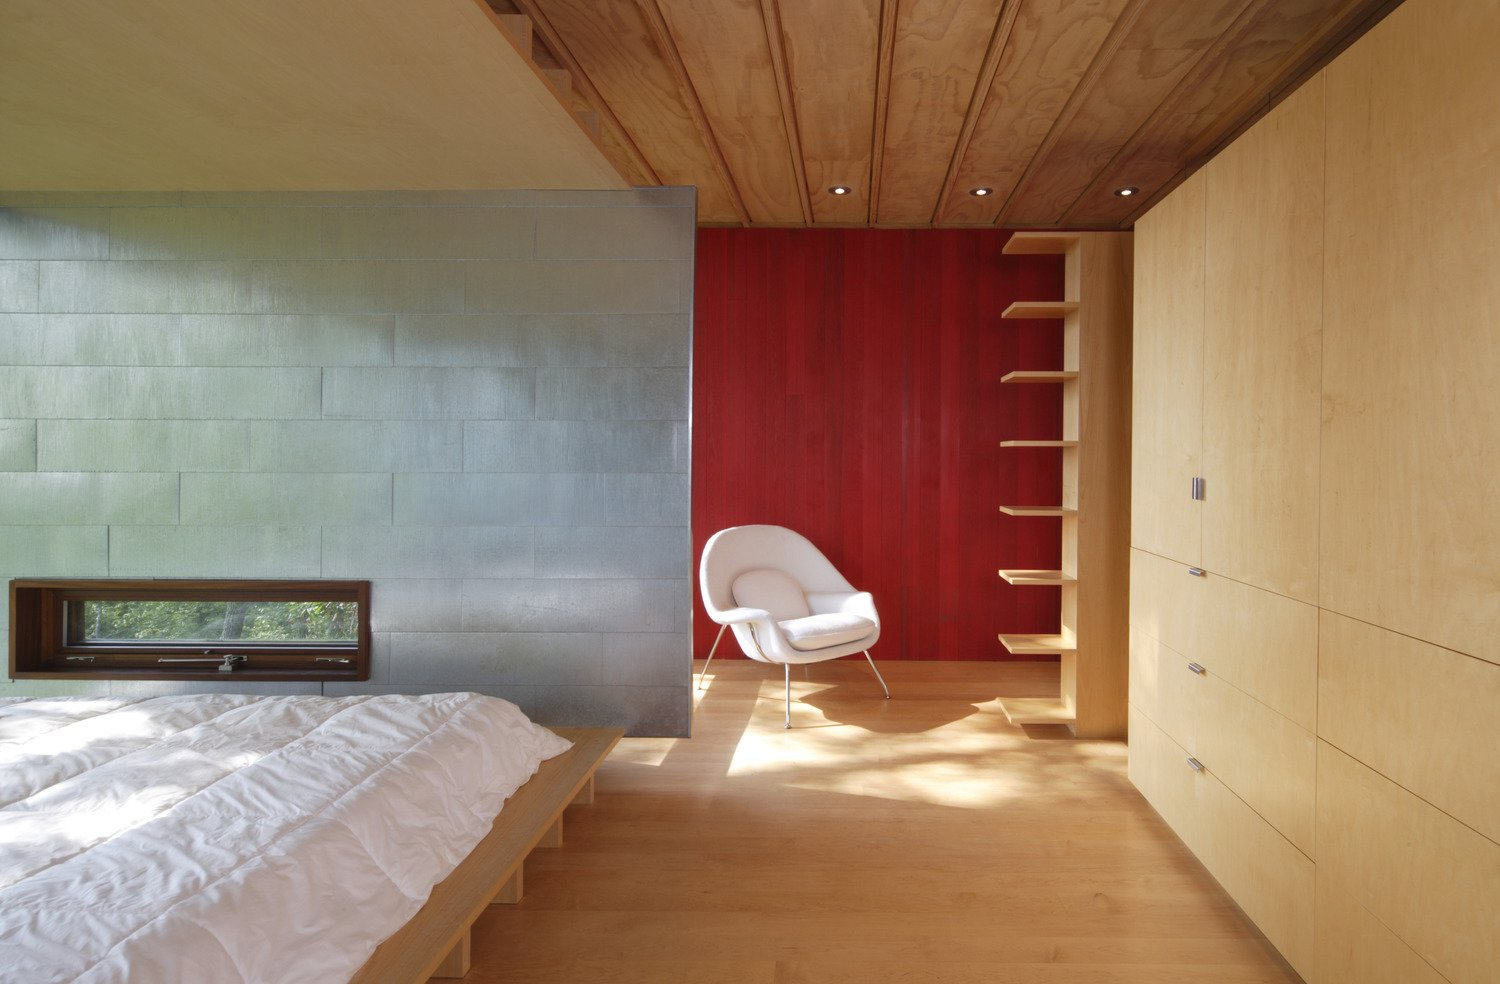 Tagged: Bedroom, Light Hardwood Floor, Storage, Bed, and Chair.  Edge House by Bohlin Cywinski Jackson